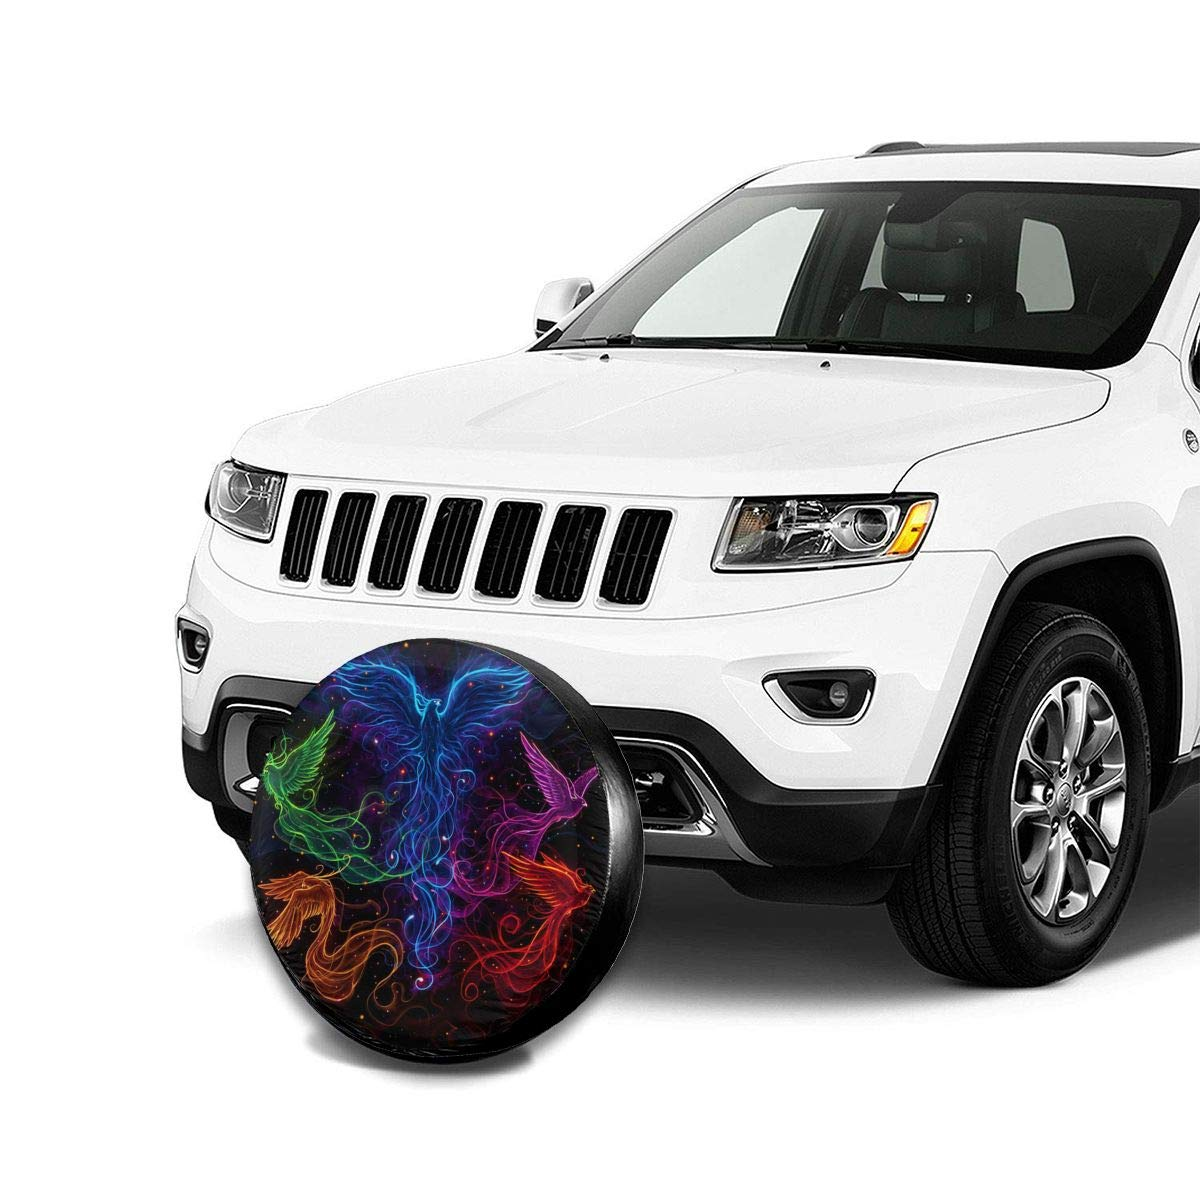 Fits Entire Wheel PecoStar Sky Full Of Colorful Phoenix Spare Wheel Cover Printed Polyester Tire Guard Protector Cover For SUV RV Trailer Truck Wheel